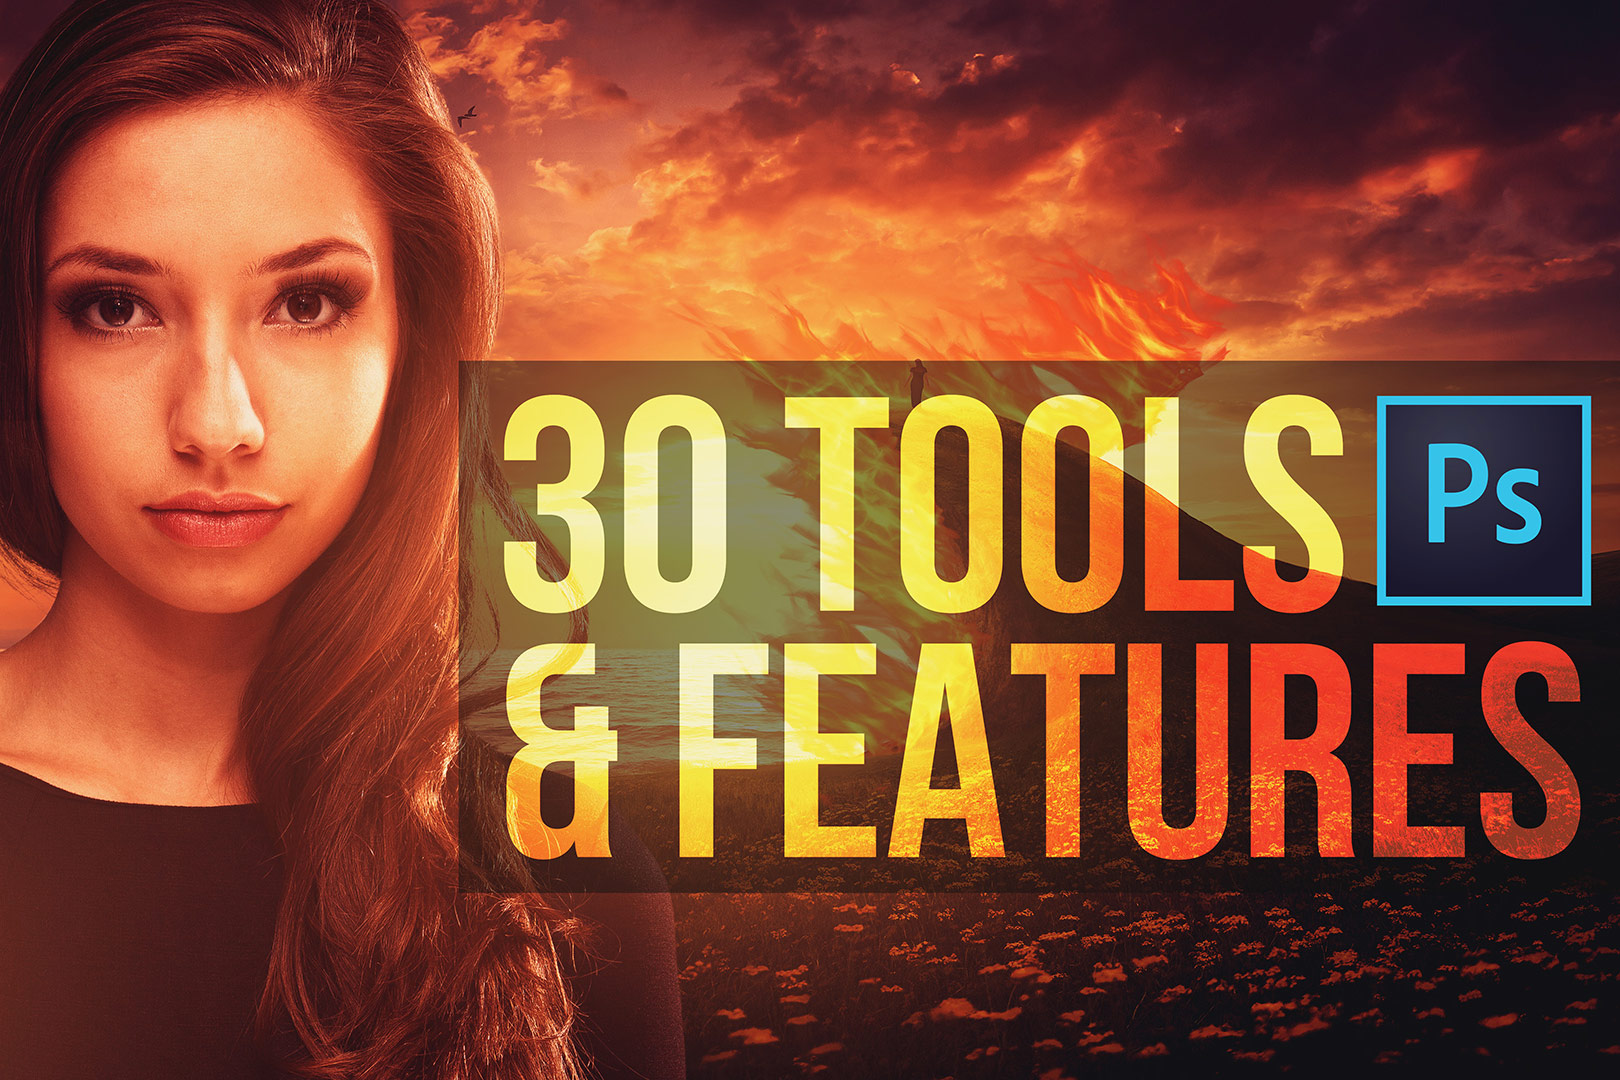 30-tools-features-thumbnail-tutvid